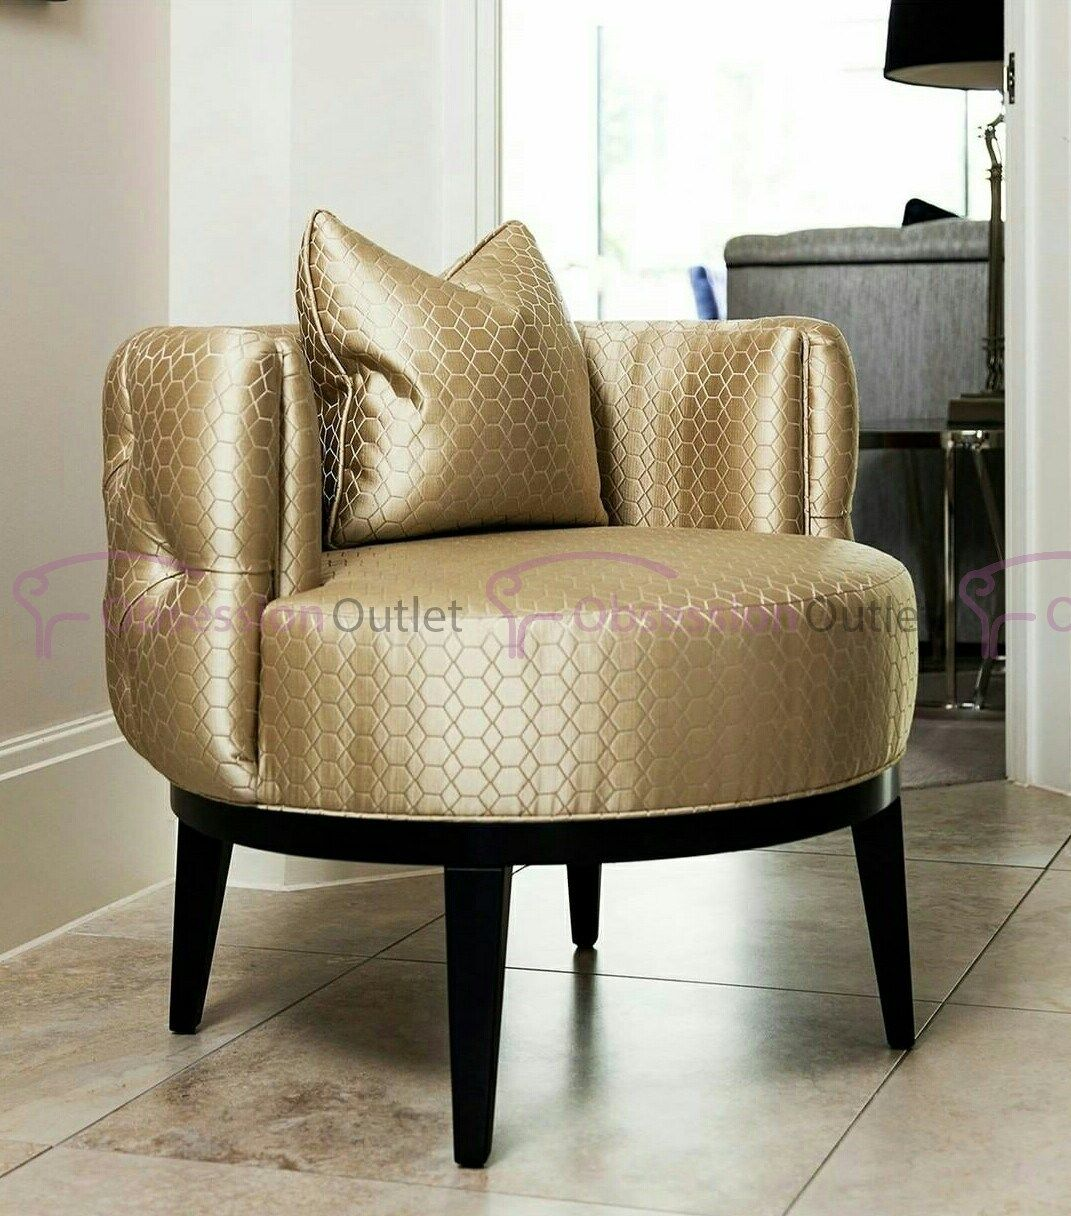 Sku Bc182 Obsession Outlet In 2020 Chair Sofa Set Bedroom Chair